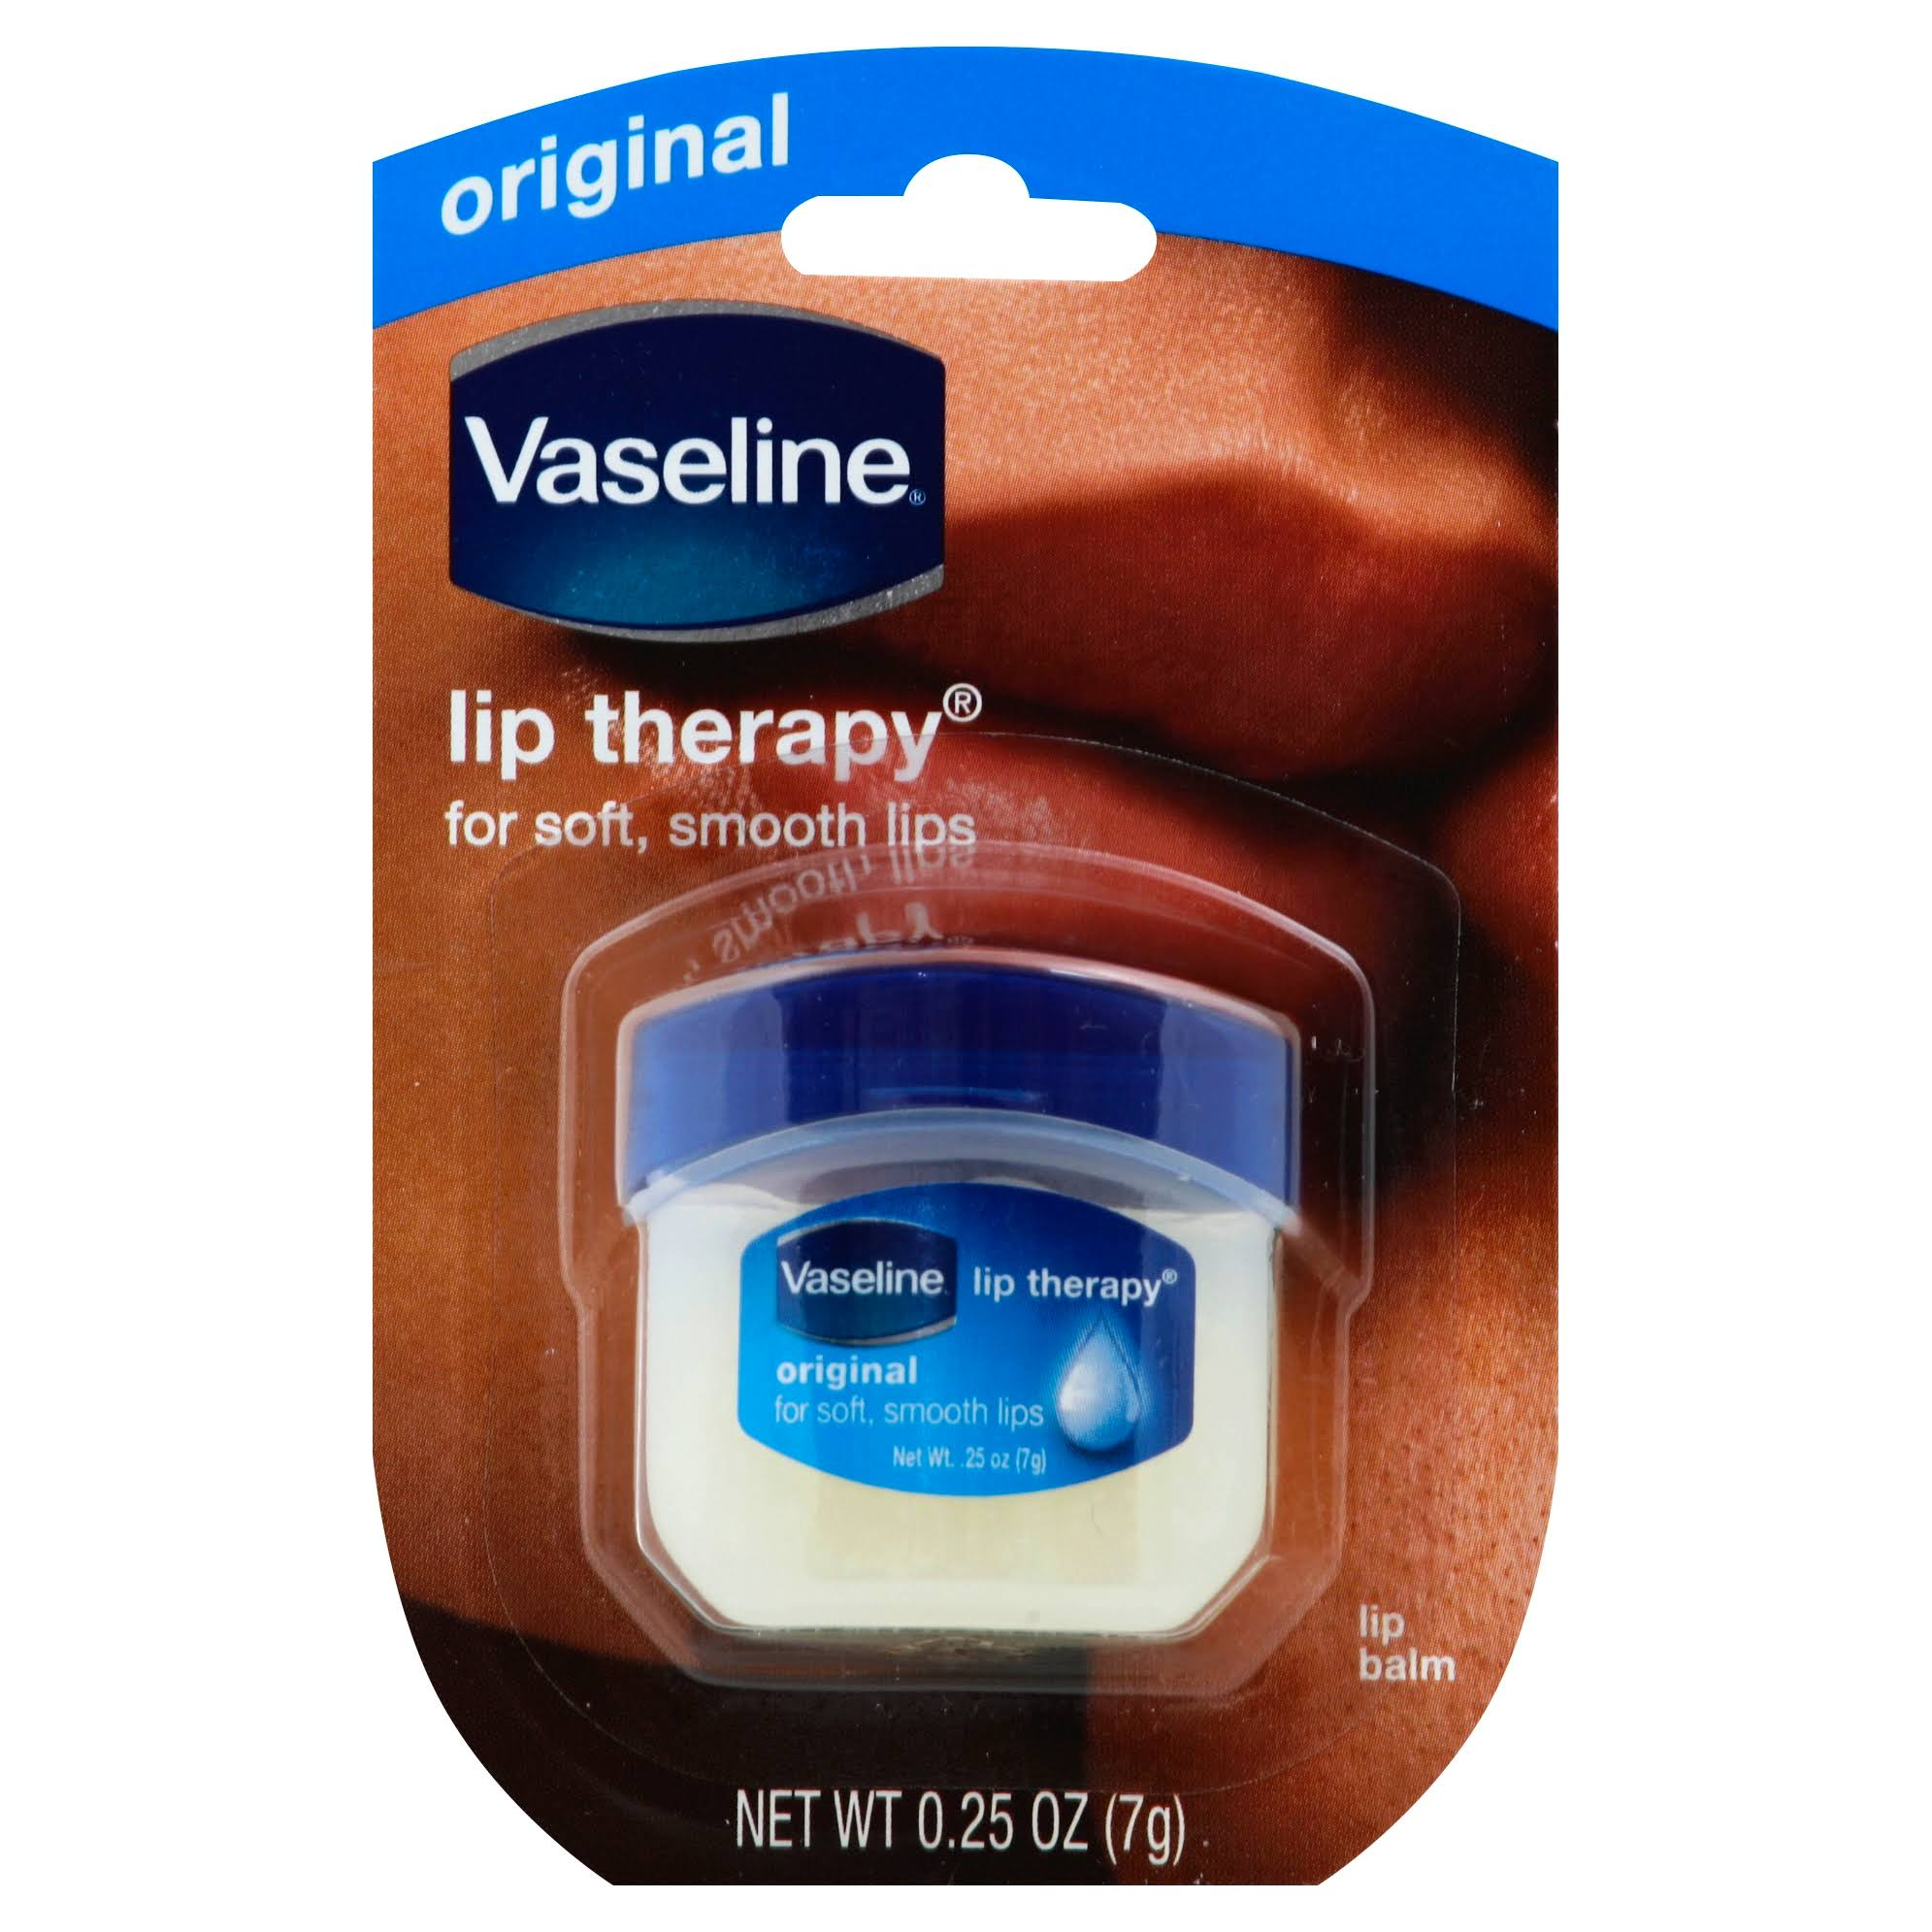 Vaseline Original Lip Therapy - 0.25 Oz